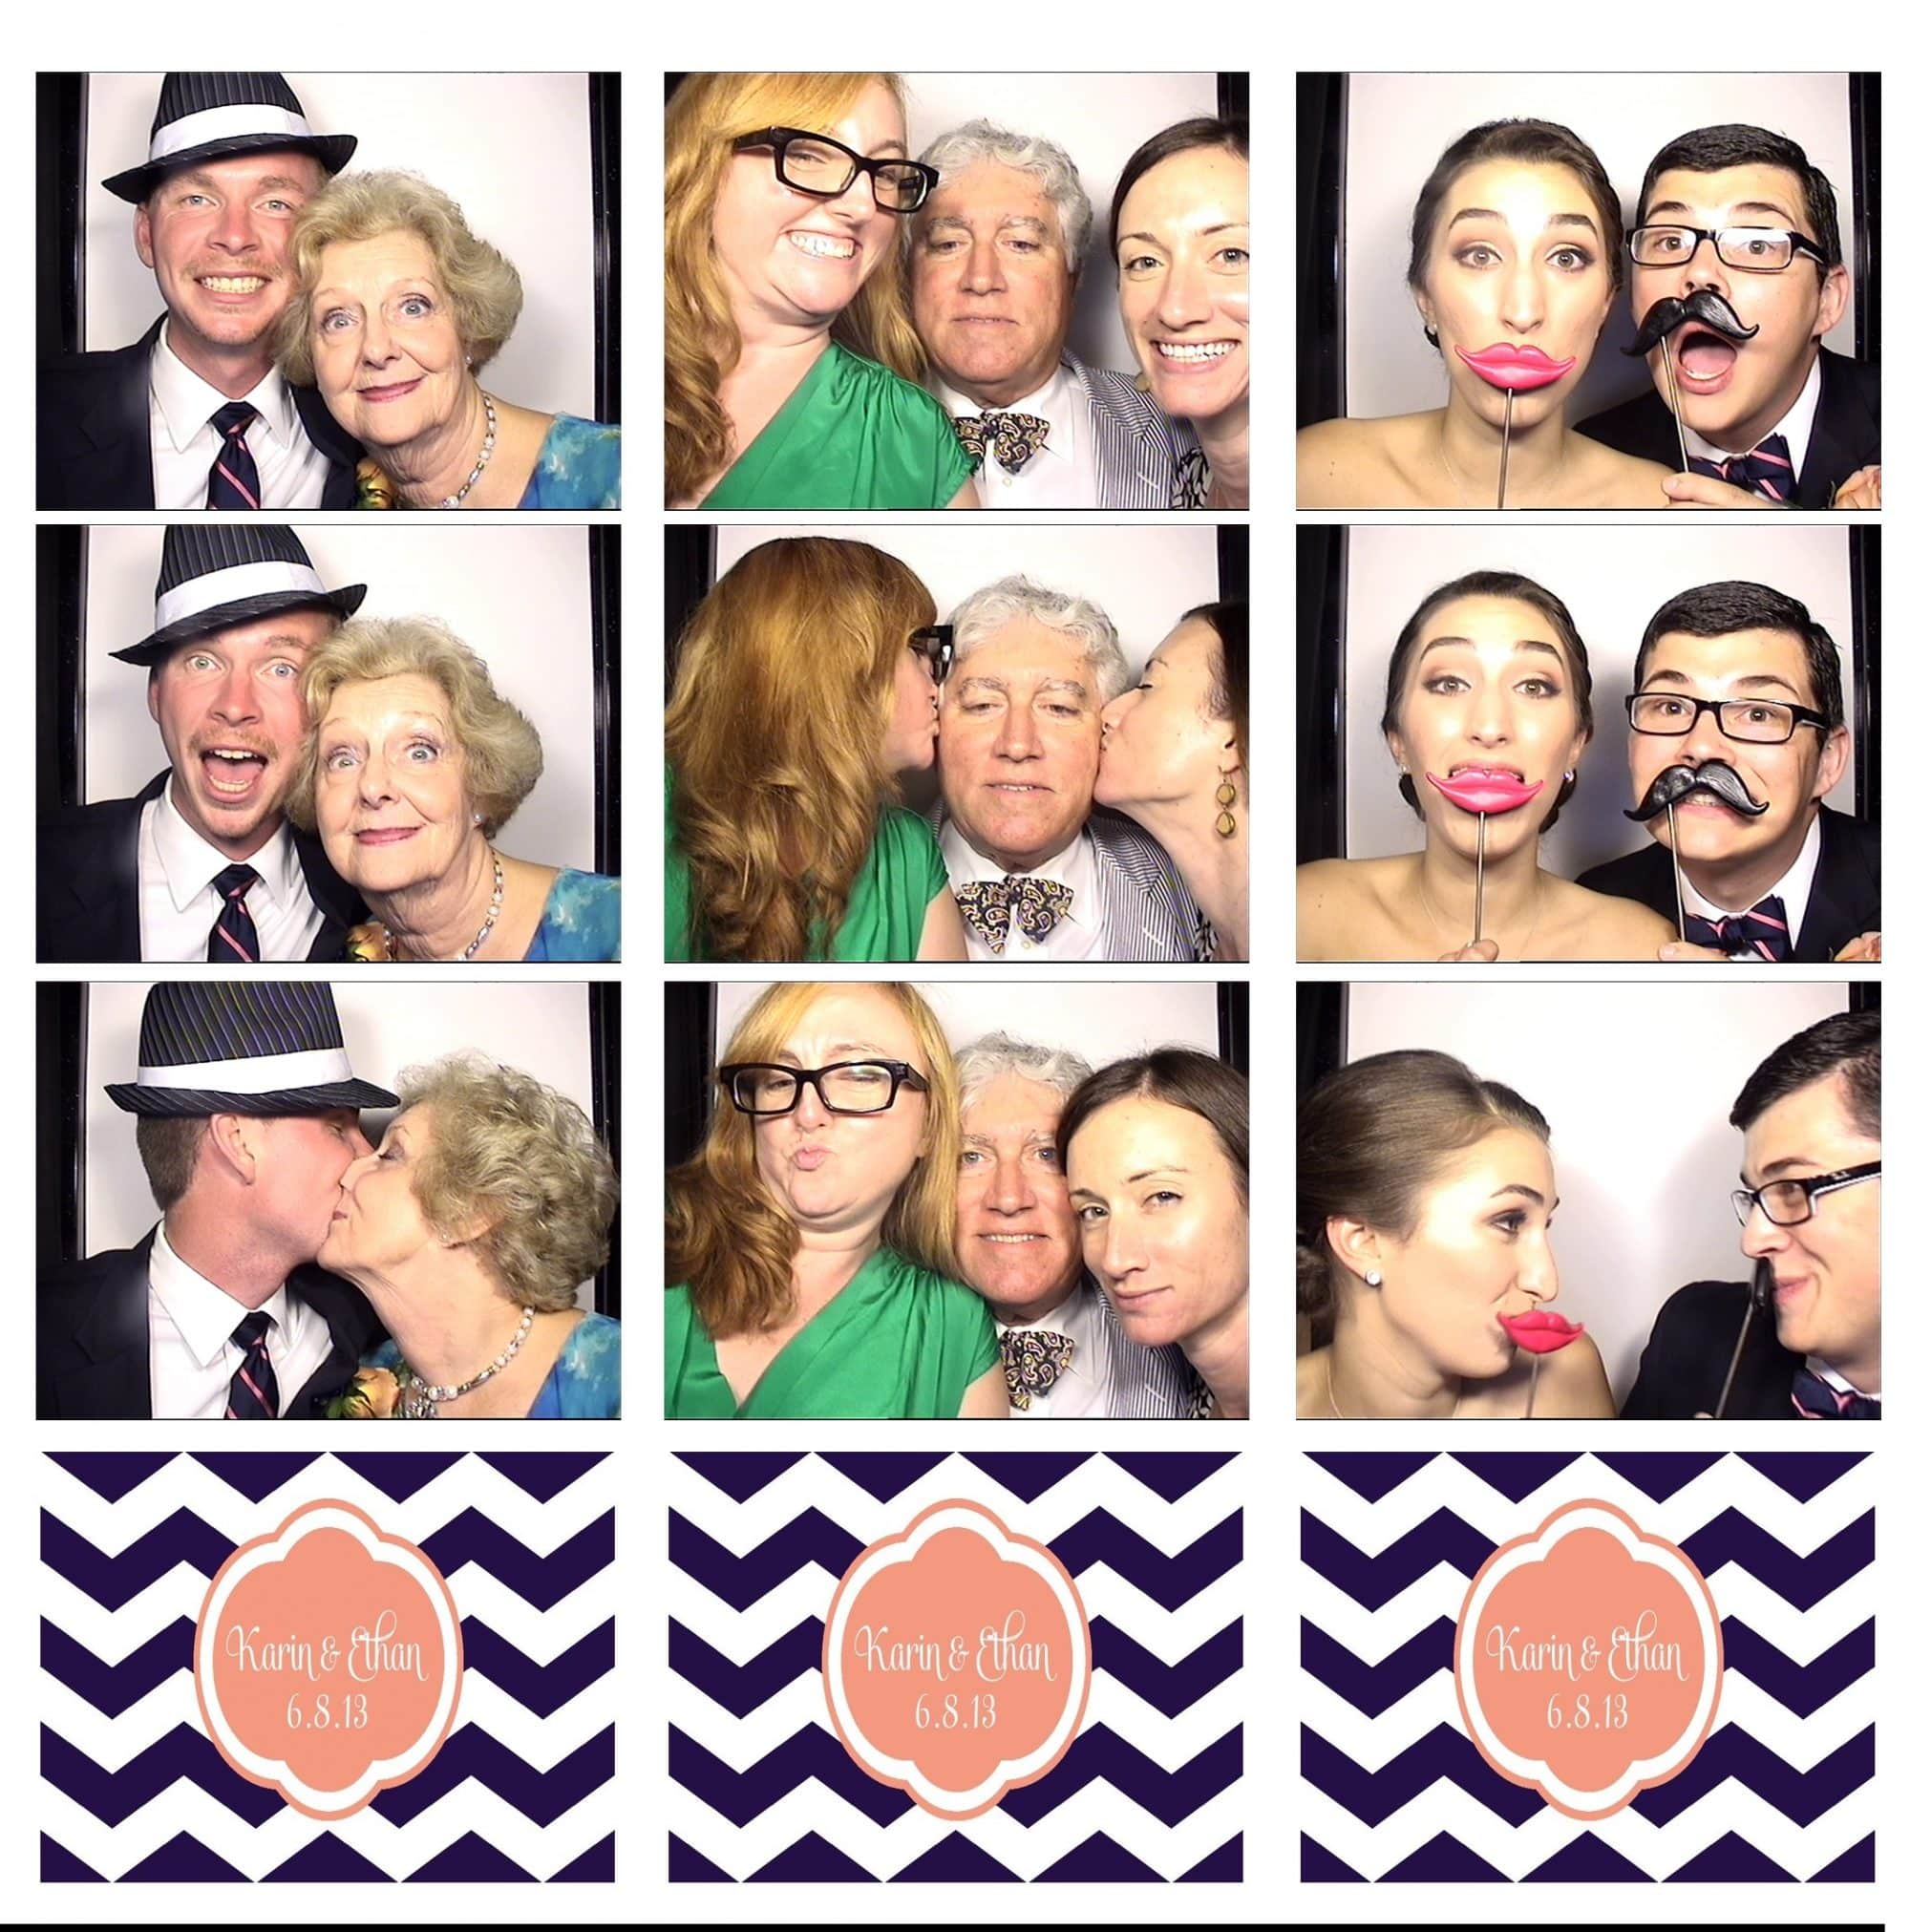 Karin + Ethan wedding at cypress grove playng in the photobooth